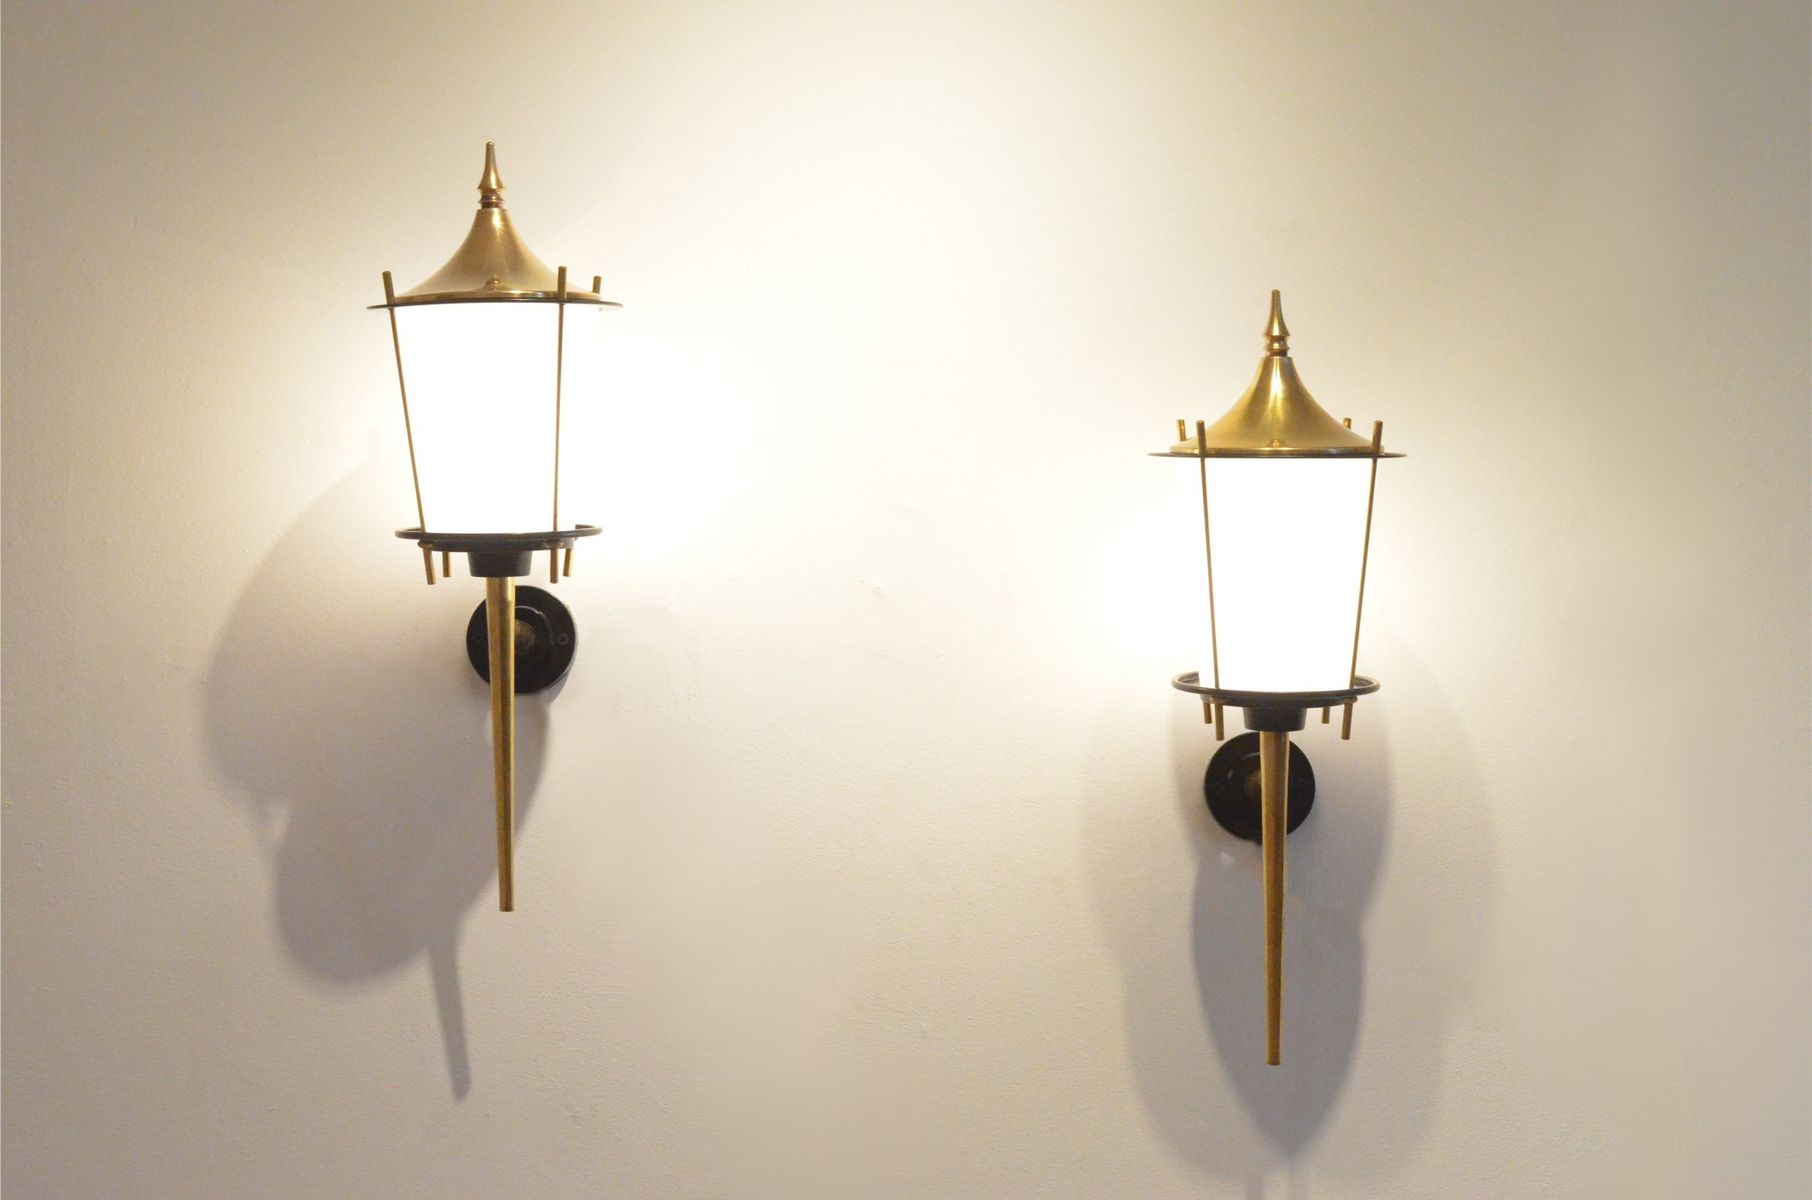 Large Black Wall Sconces : Large Mid-Century French Black Lacquer & Brass Wall Sconces from Maison Arlus, Set of 2 for sale ...